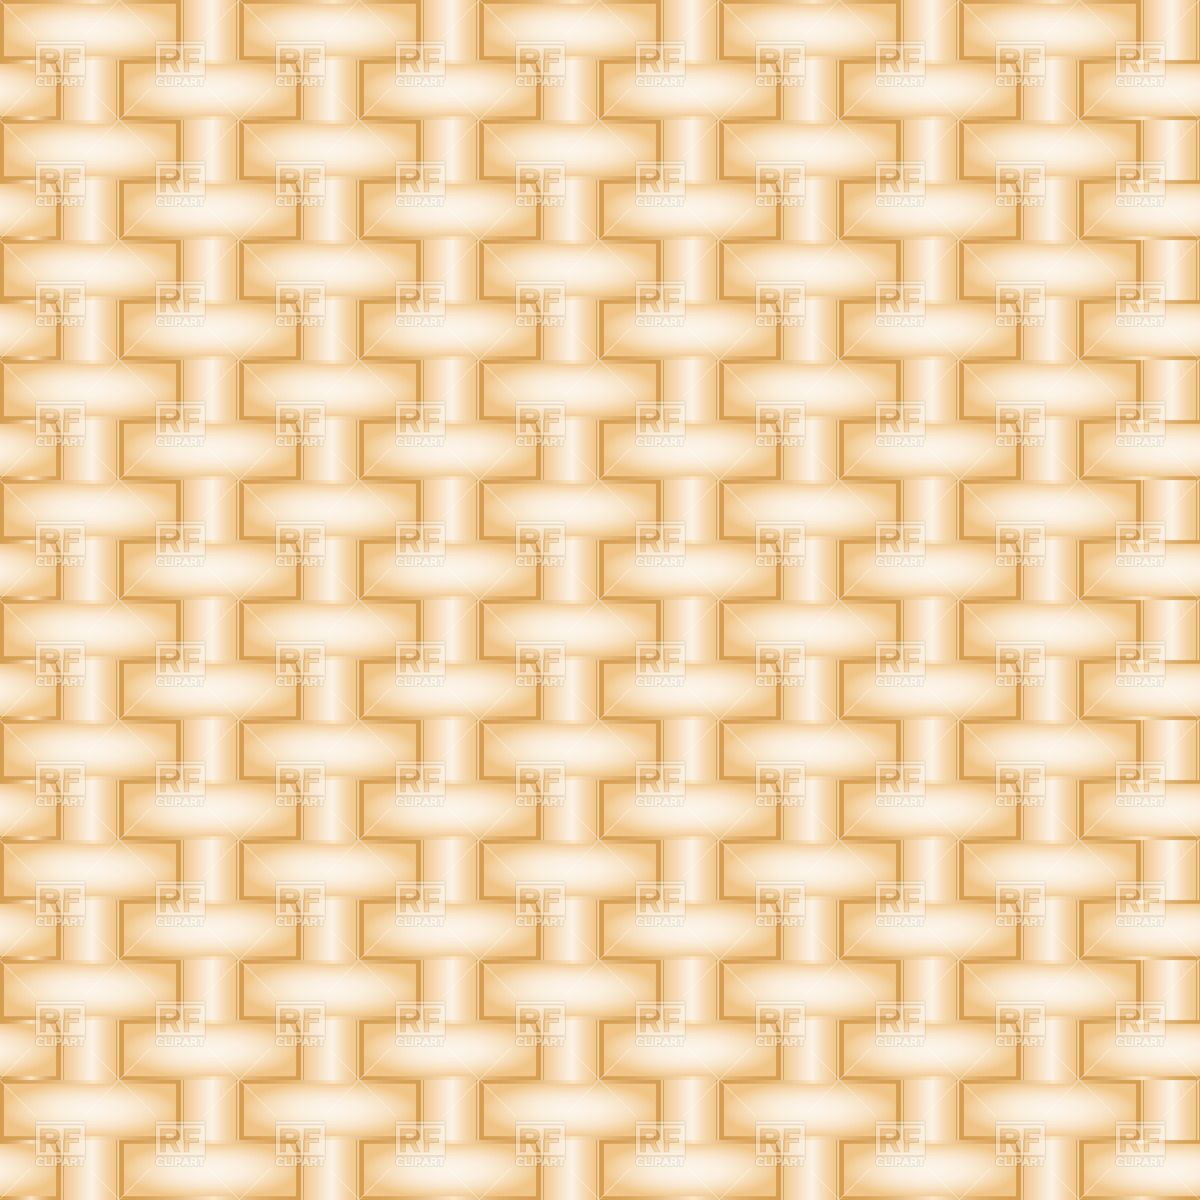 Abstract seamless weaving pattern Vector Image #33631.